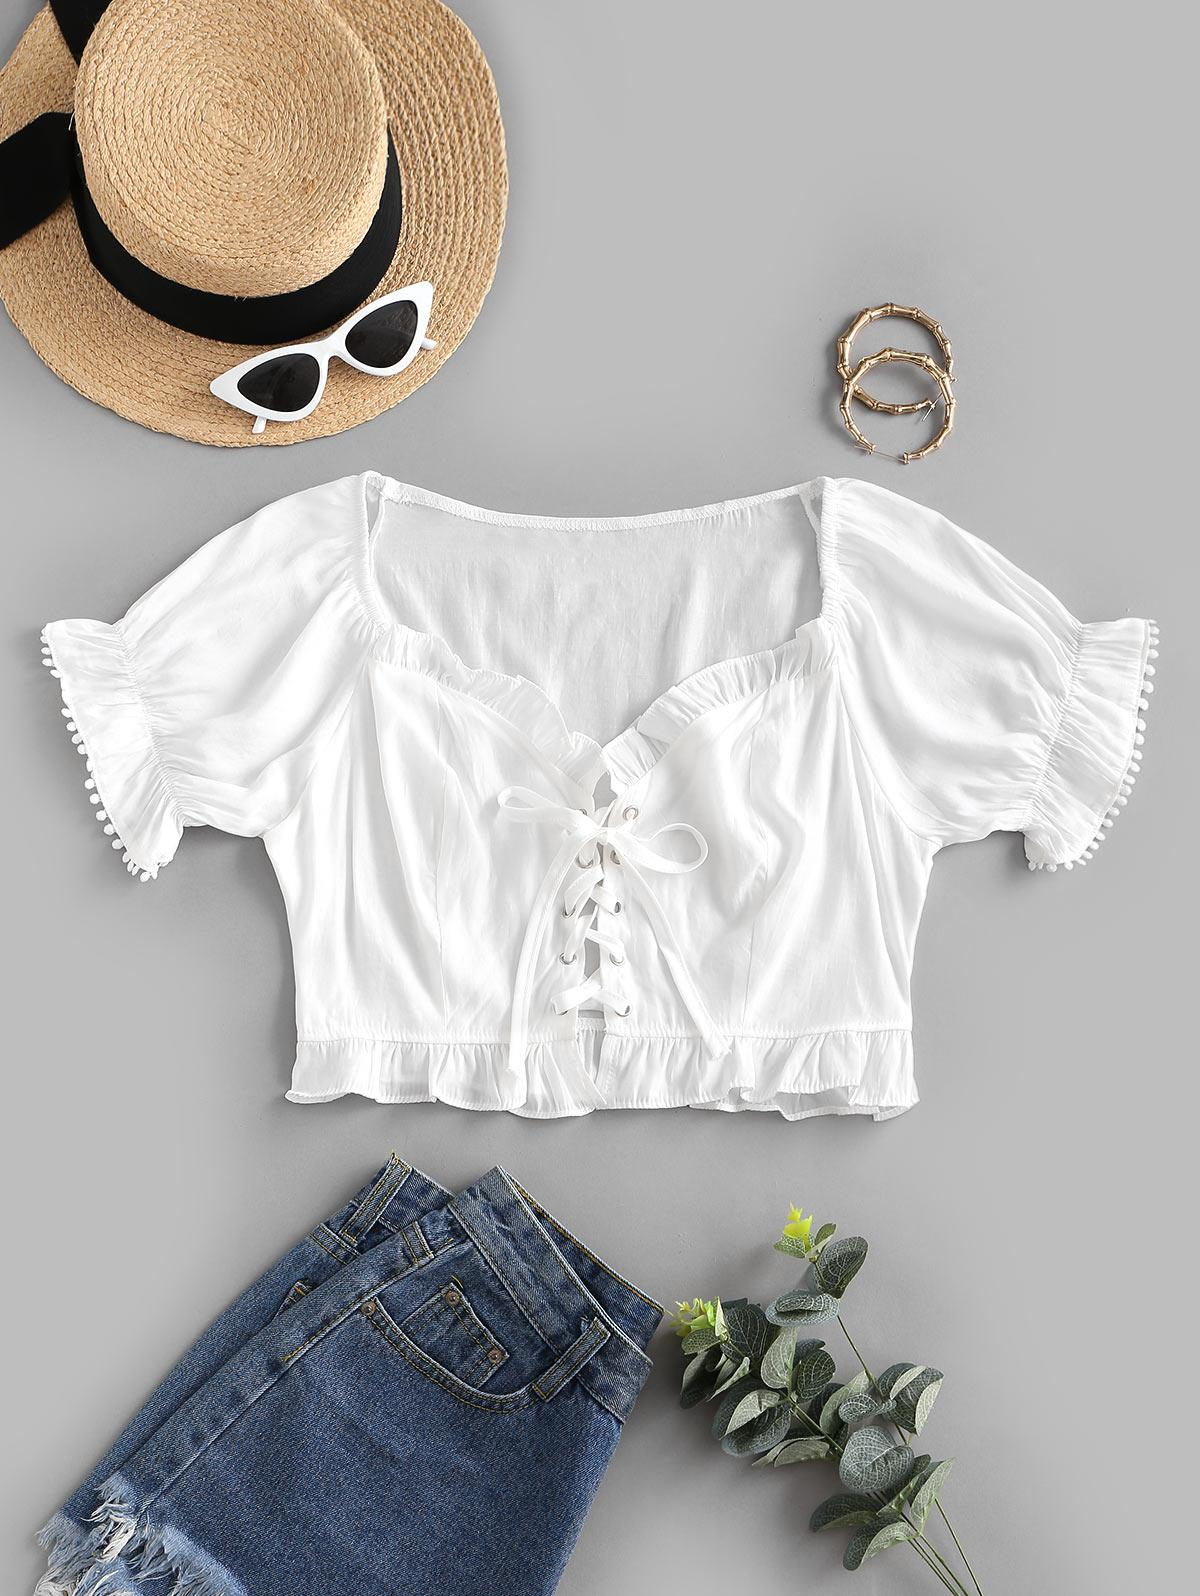 Picot Trim Frilled Lace Up Blouse